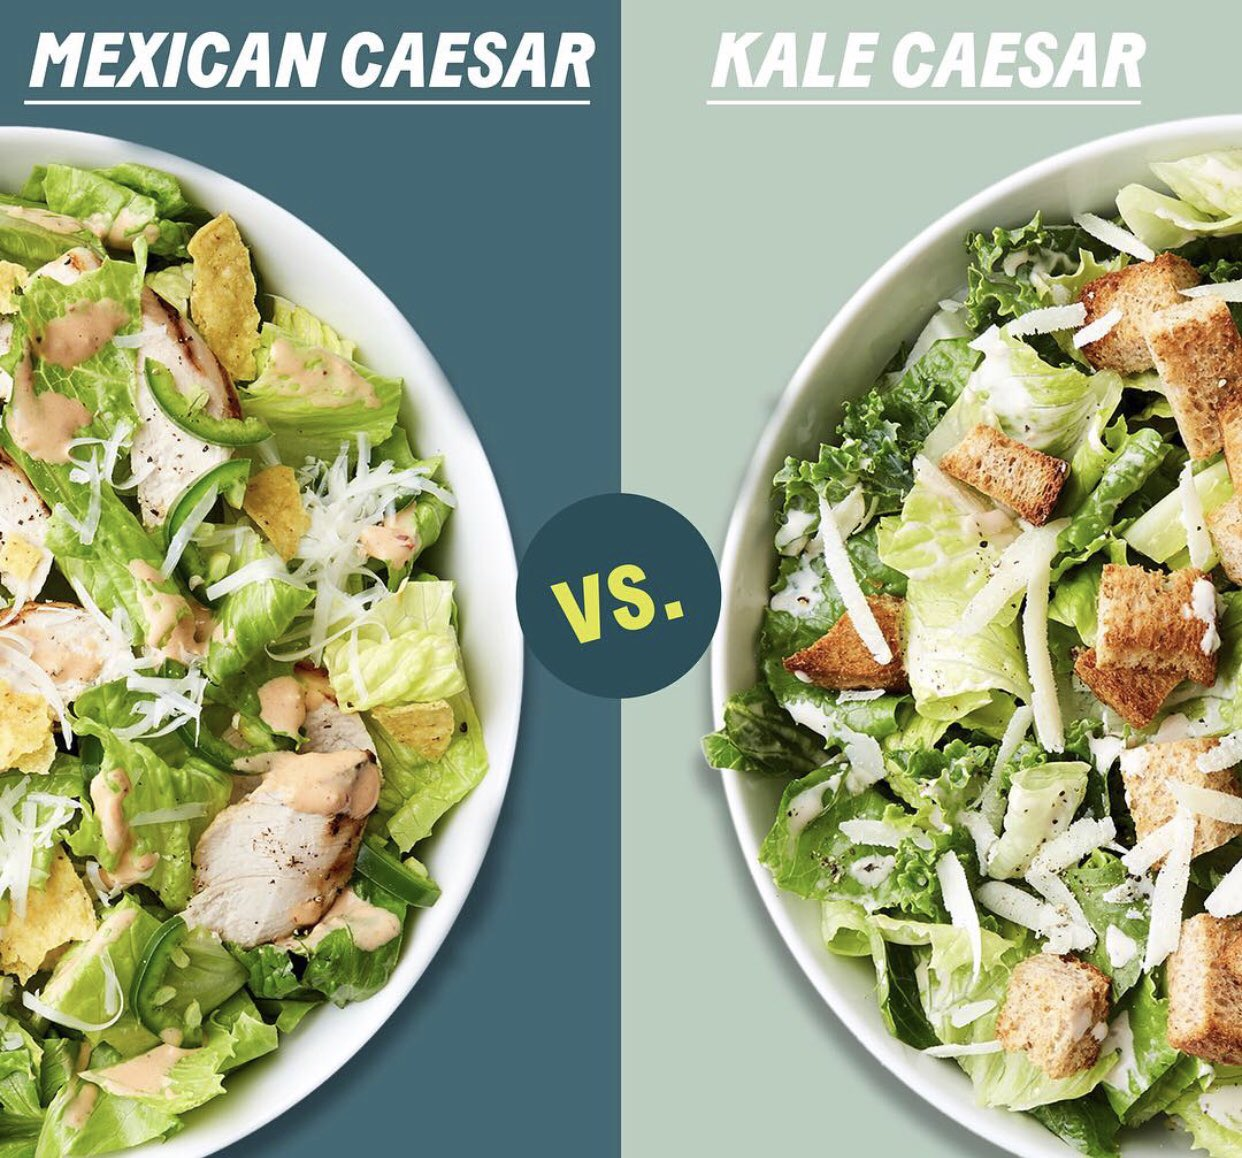 Chopt Creative Salad Co On Twitter Mexican Caesar Or Kale